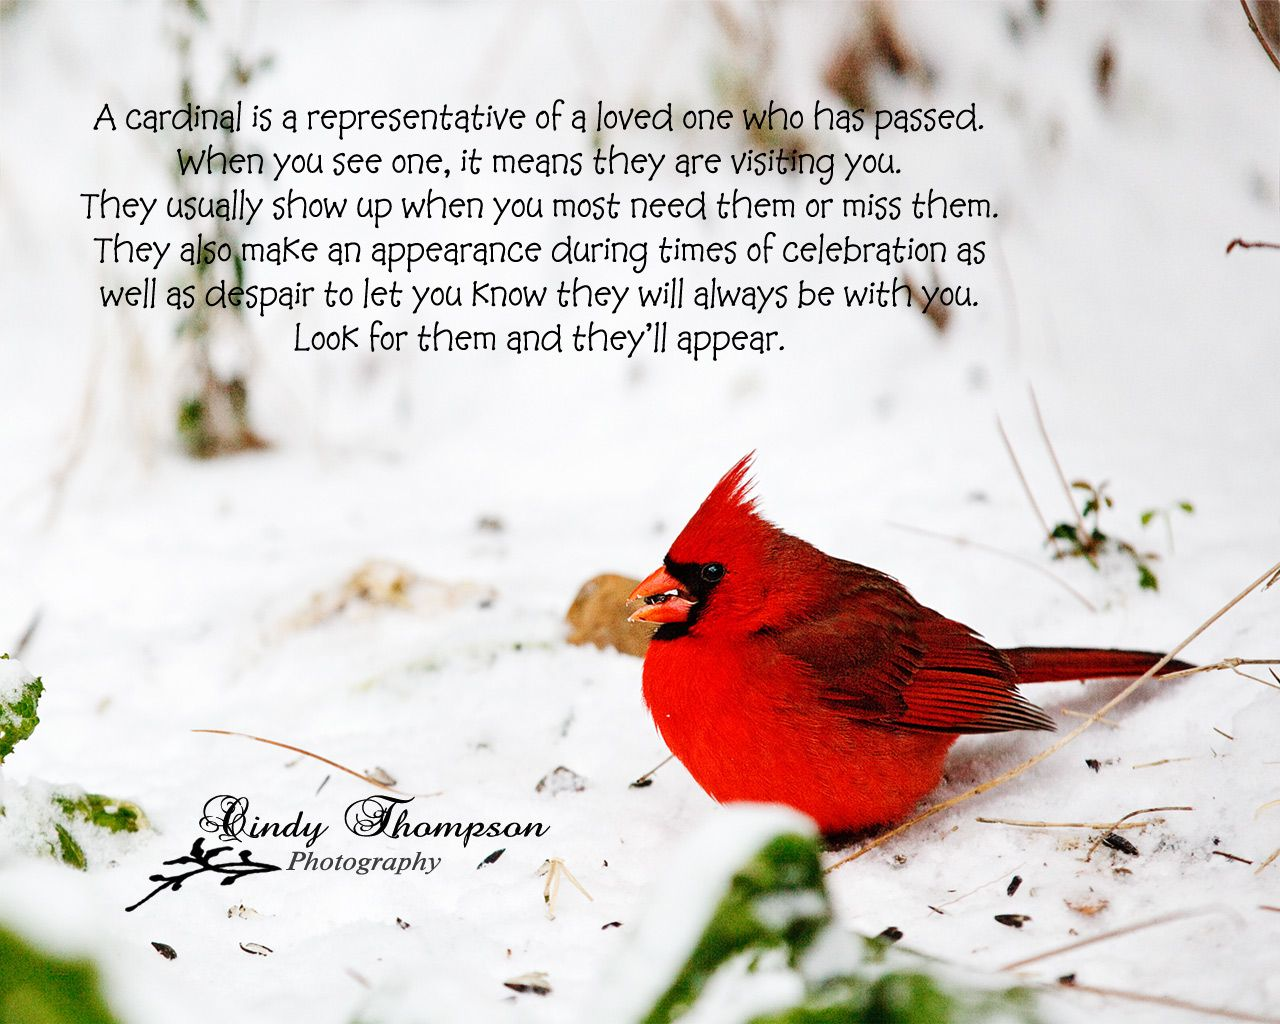 Co color cardinal red - Cardinal Red Bird Cindy Thompson Photography